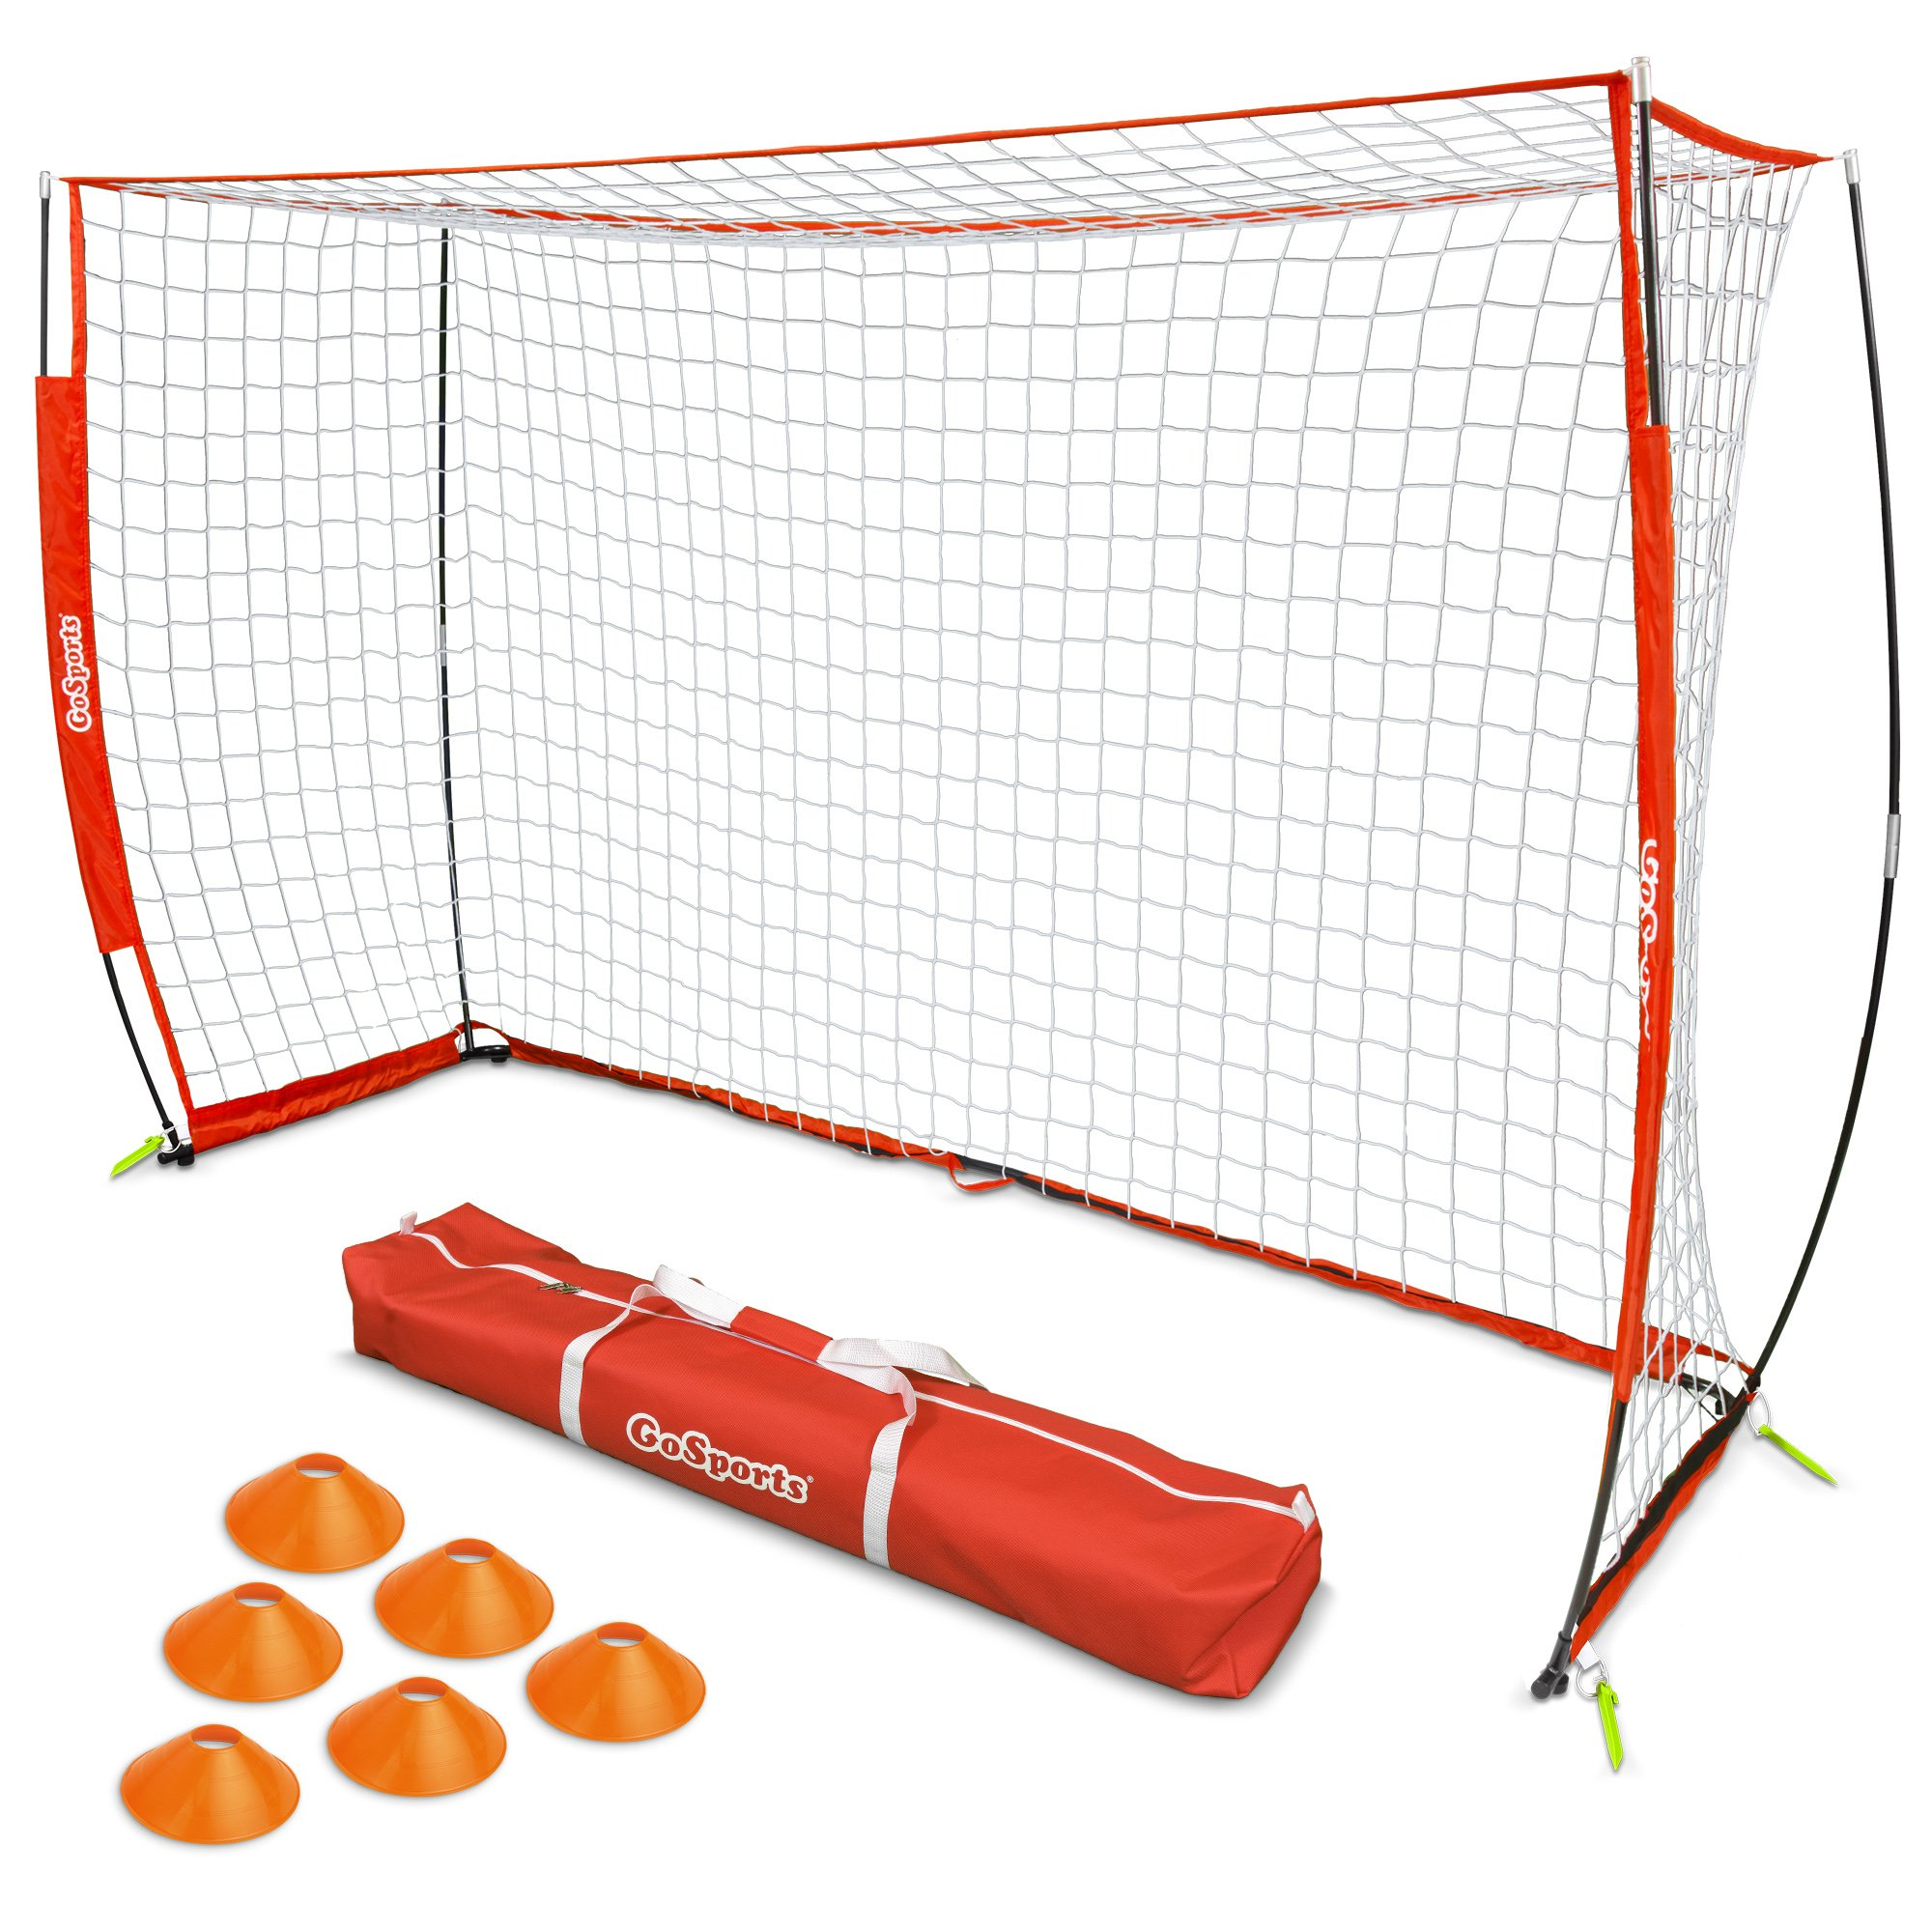 GoSports Elite Futsal Soccer Goal   Regulation 3M x 2M Size for Indoor or Outdoor Use   Foldable Bow Frame Sets Up in Minutes   Play & Train Like The Pros by GoSports